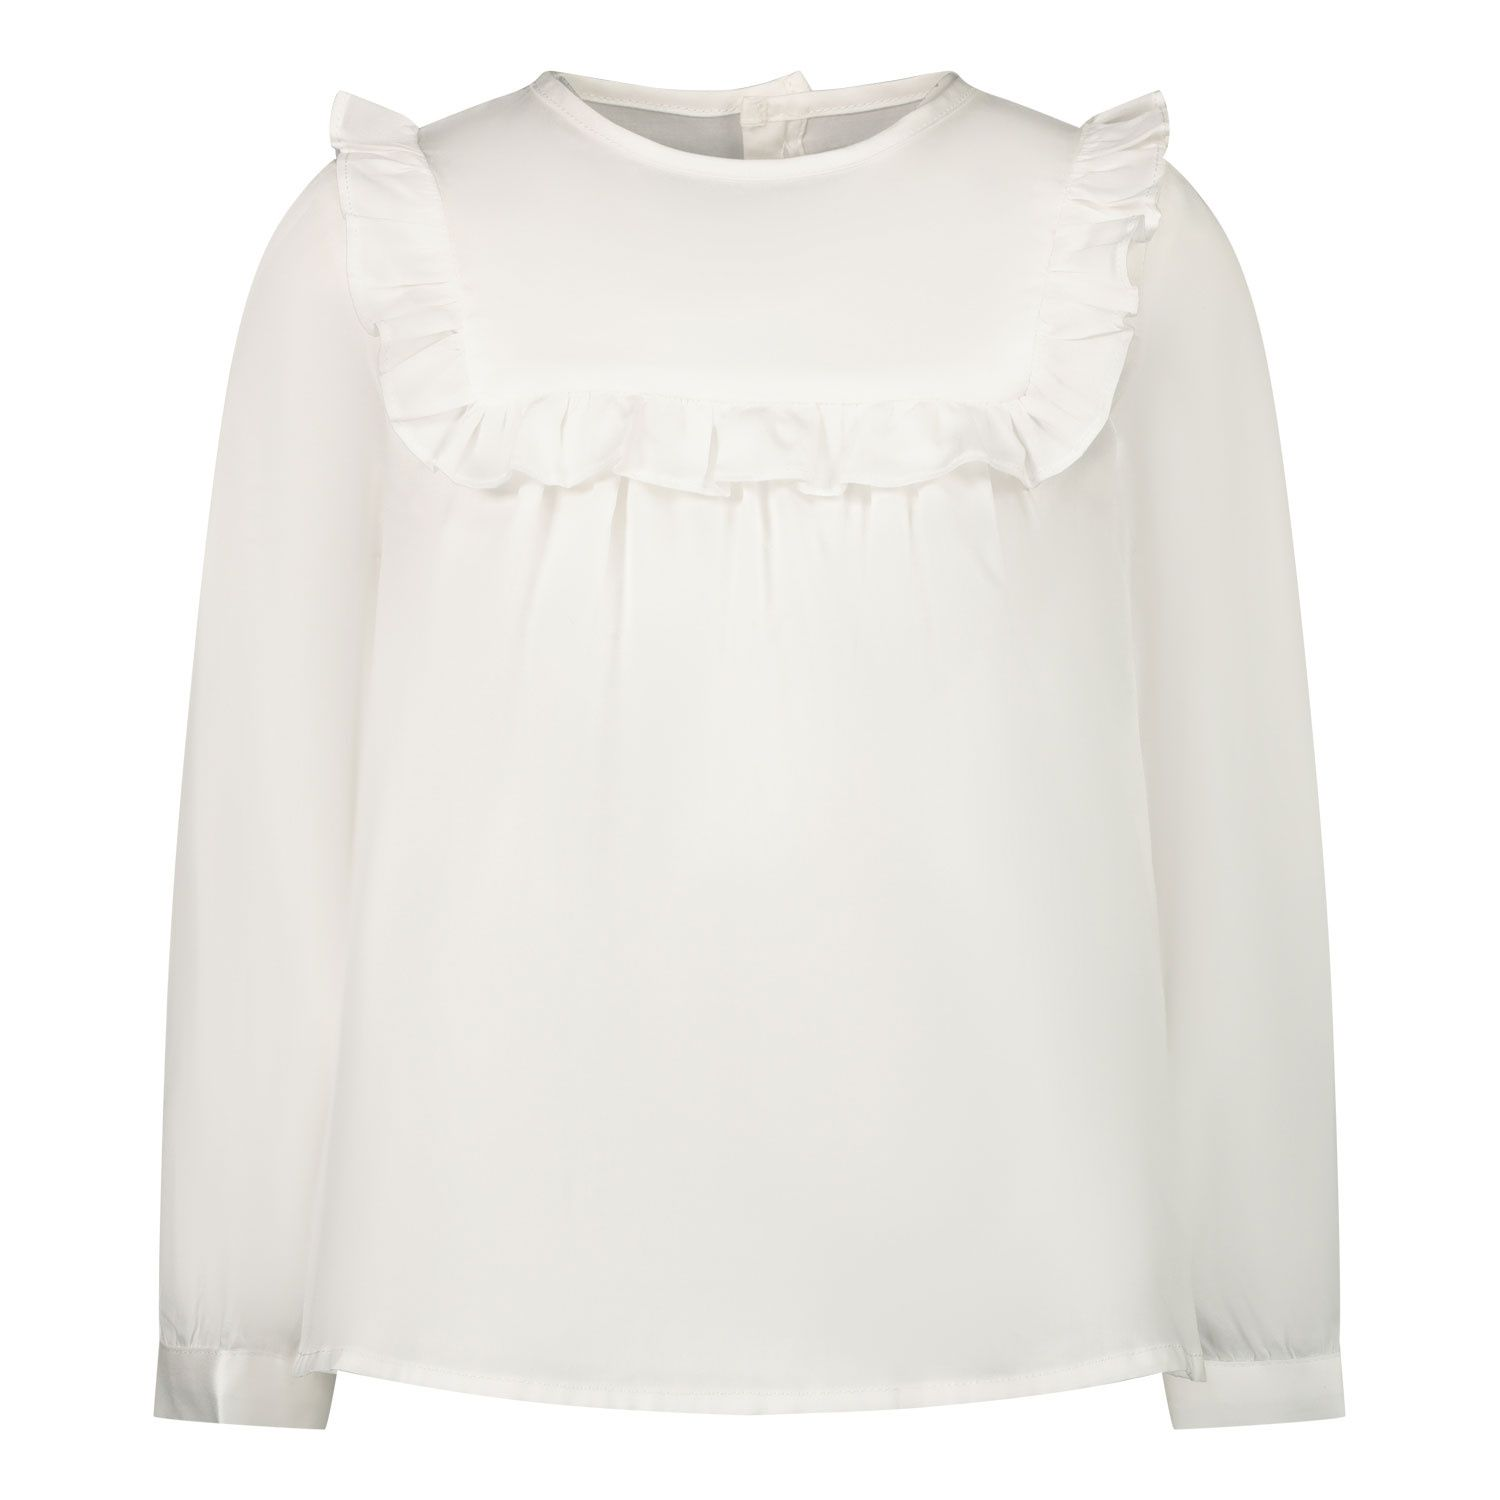 Picture of Mayoral 2136 baby blouse off white